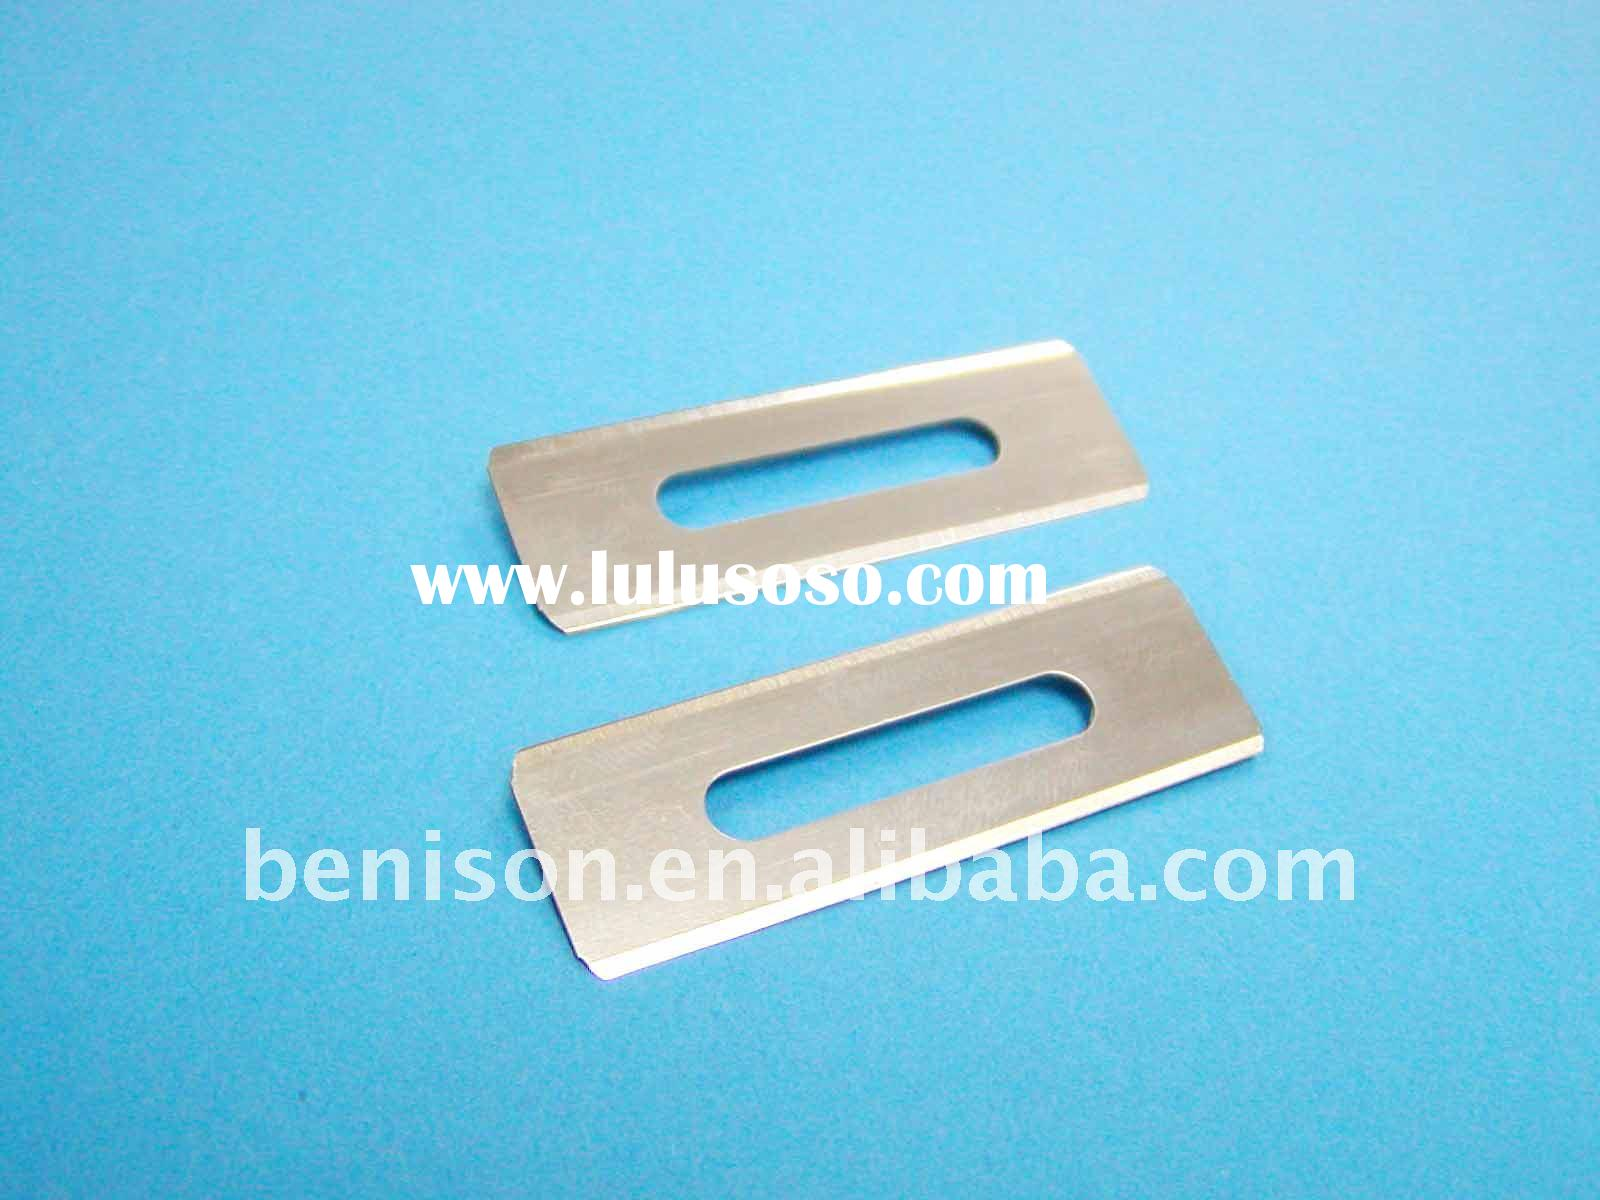 Boston Paper Cutter 2612 Replacement Blade Boston Paper